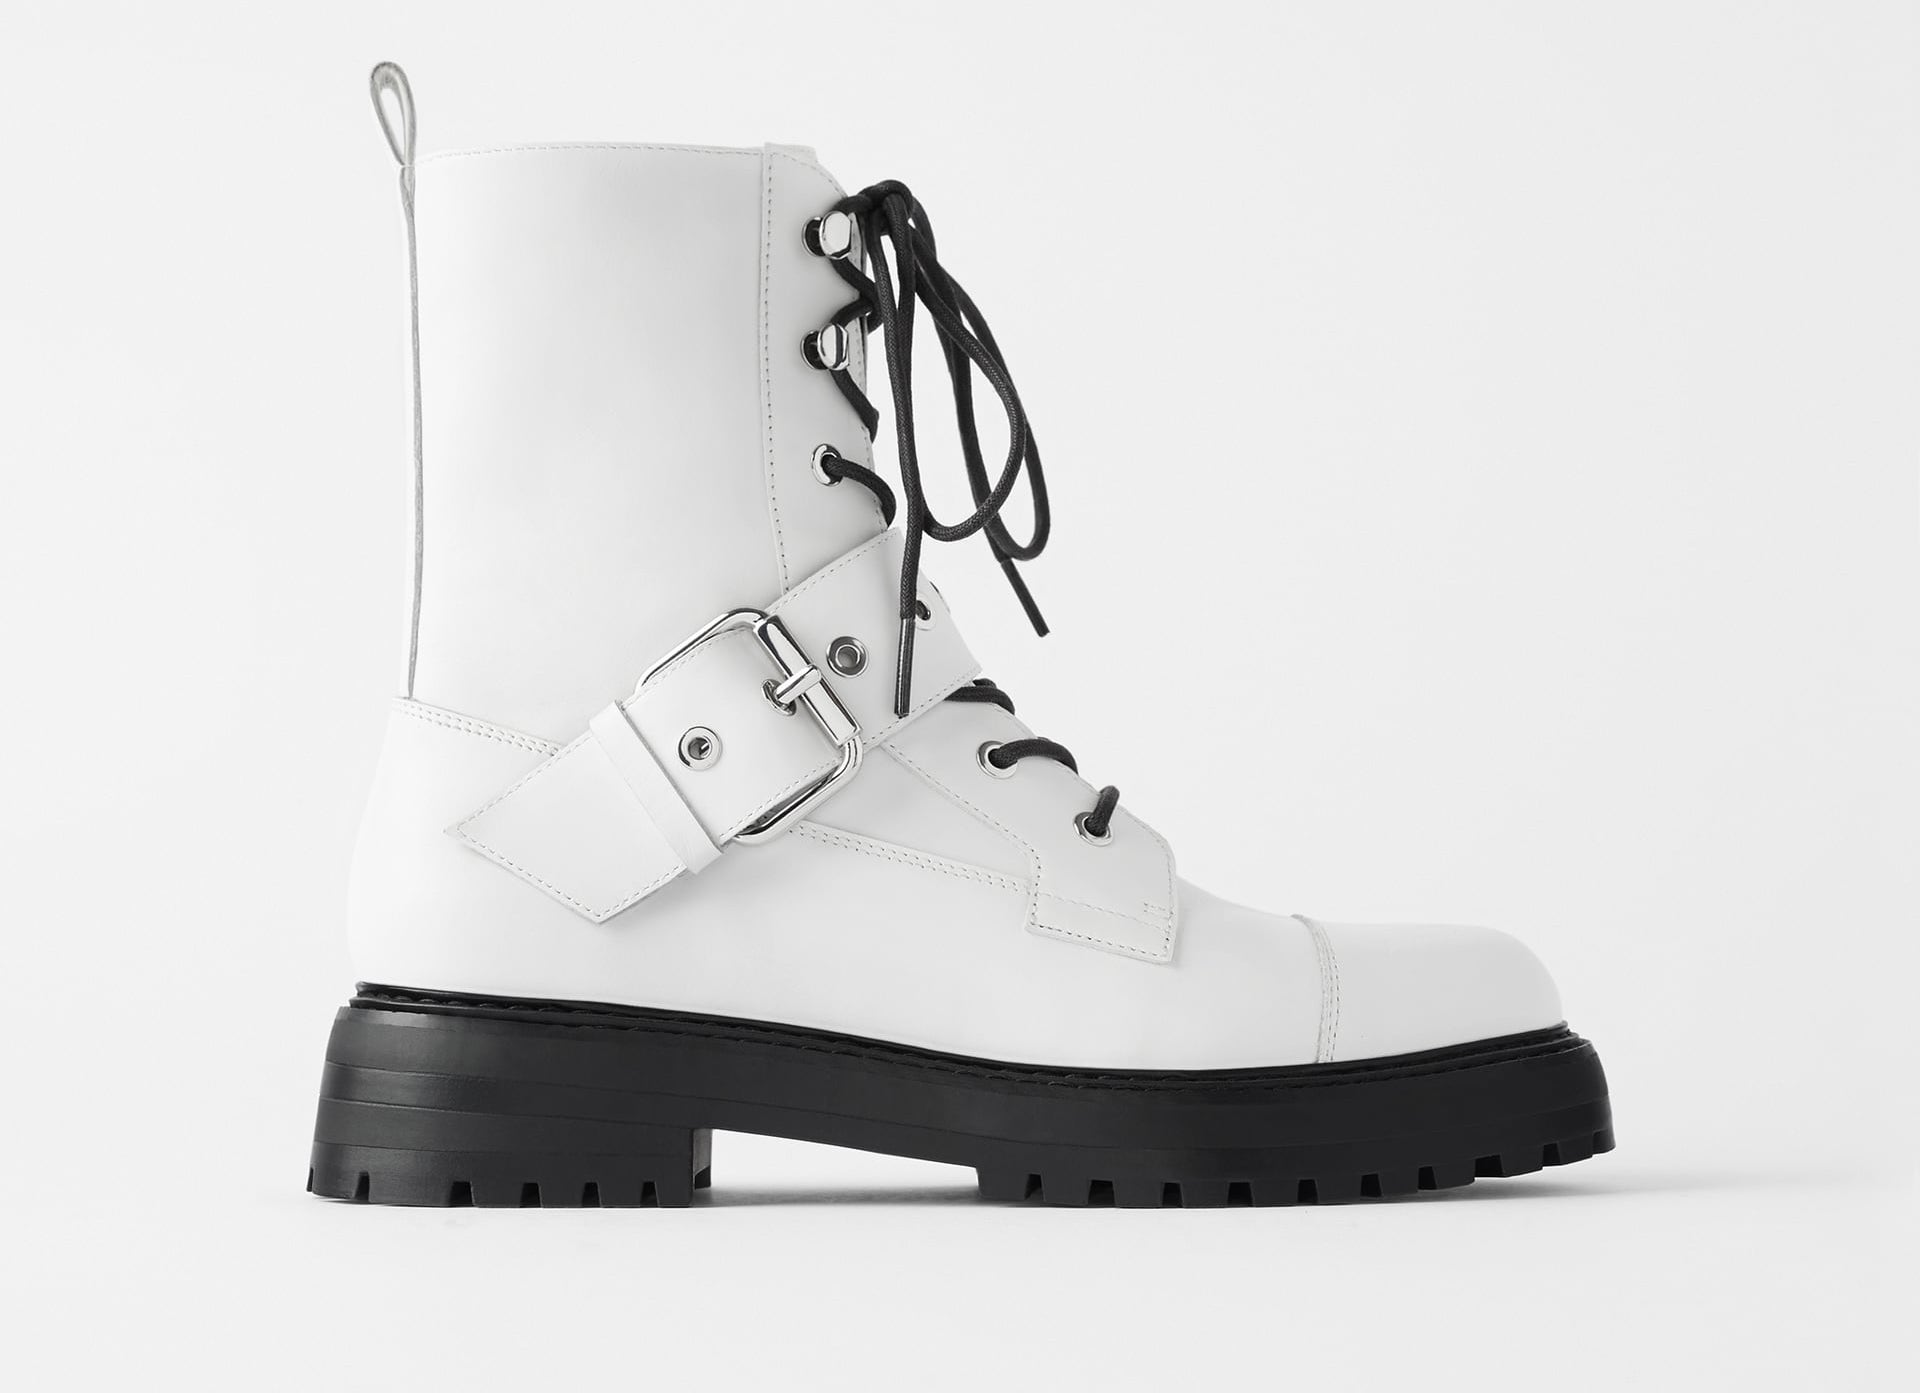 zara-799-white-boot1.jpg